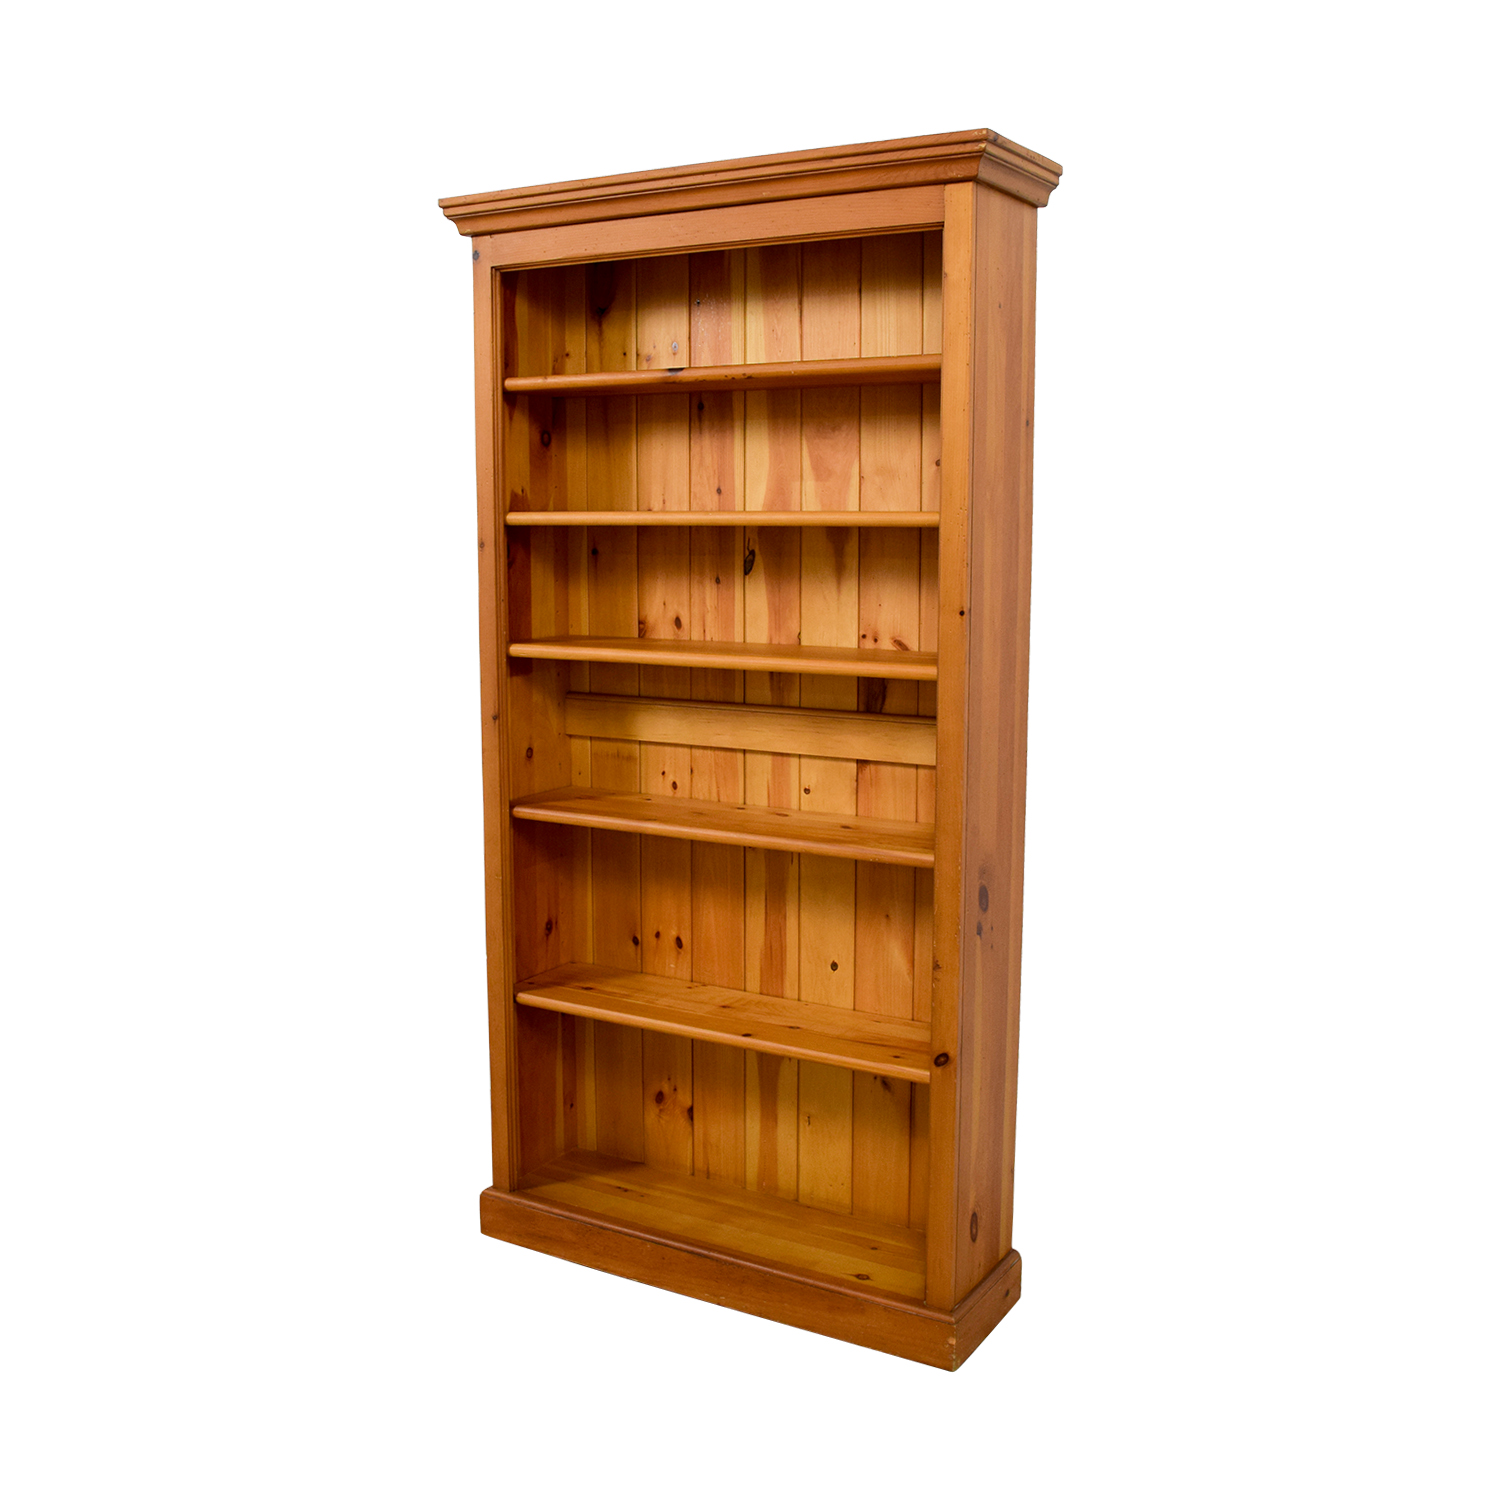 Crate and Barrel Crate & Barrel Walnut Bookcase nj